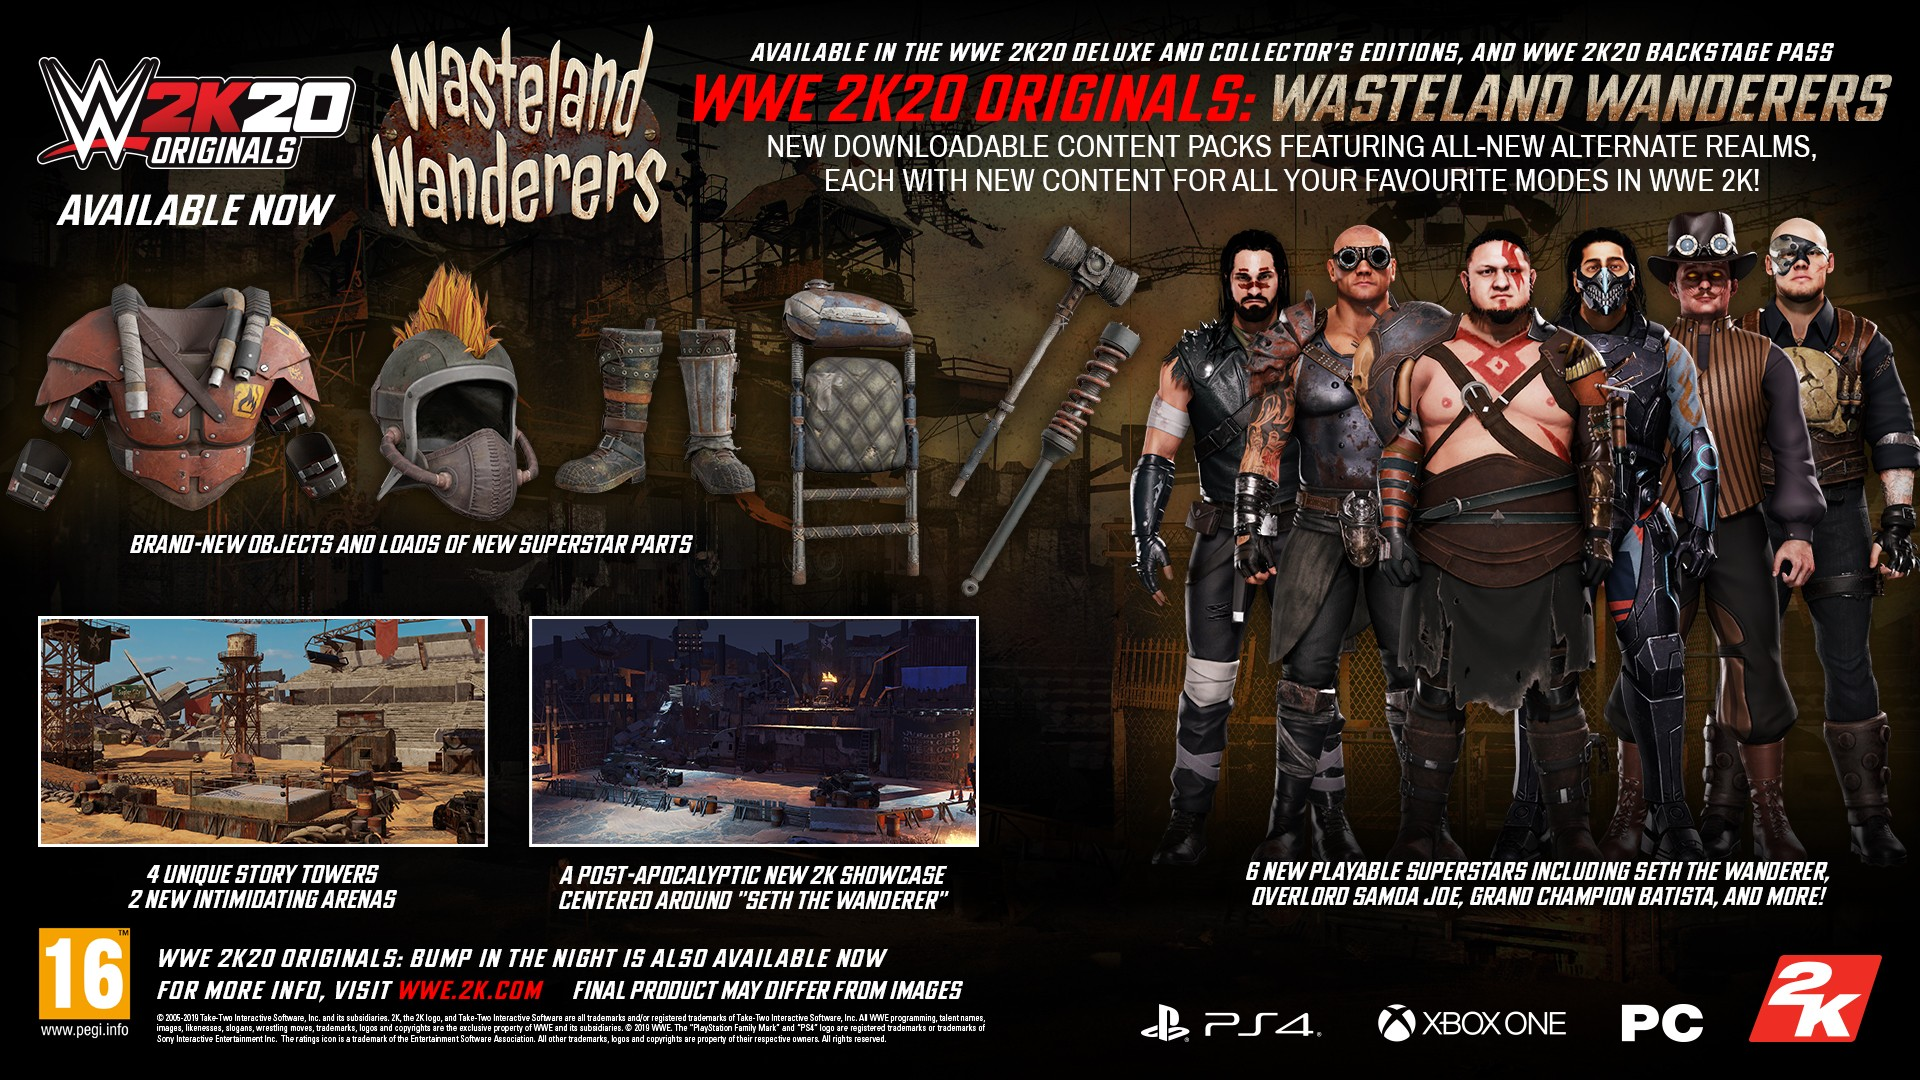 Wwe 2k20 S Second Dlc Is Themed Around A Post Apocalyptic Wasteland